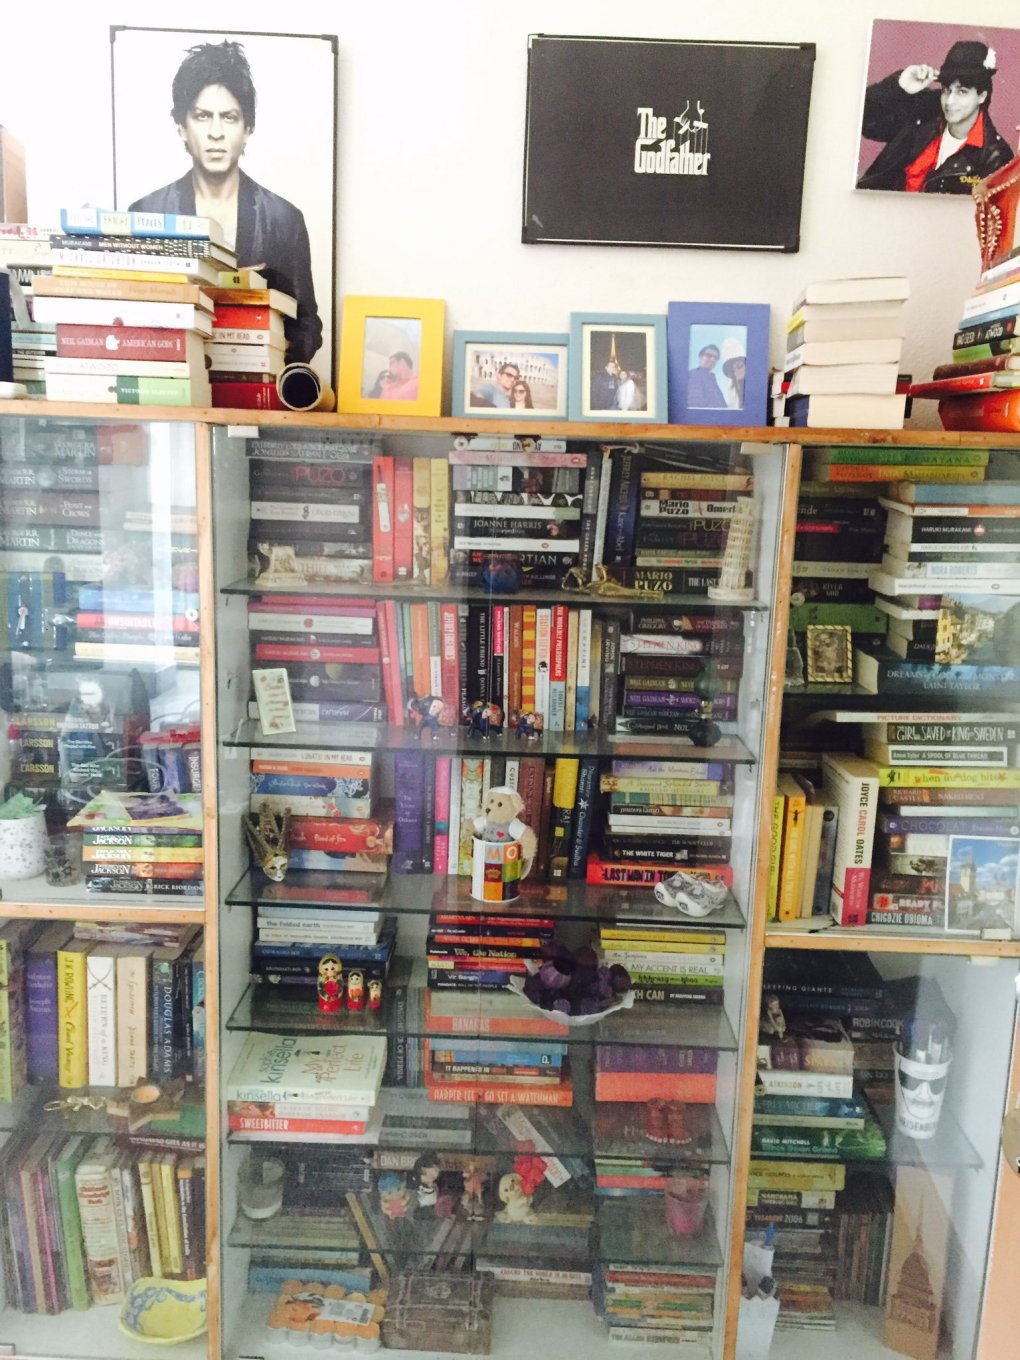 thcc1-01-medhika_My book shelf, the best thing in my bedroom!